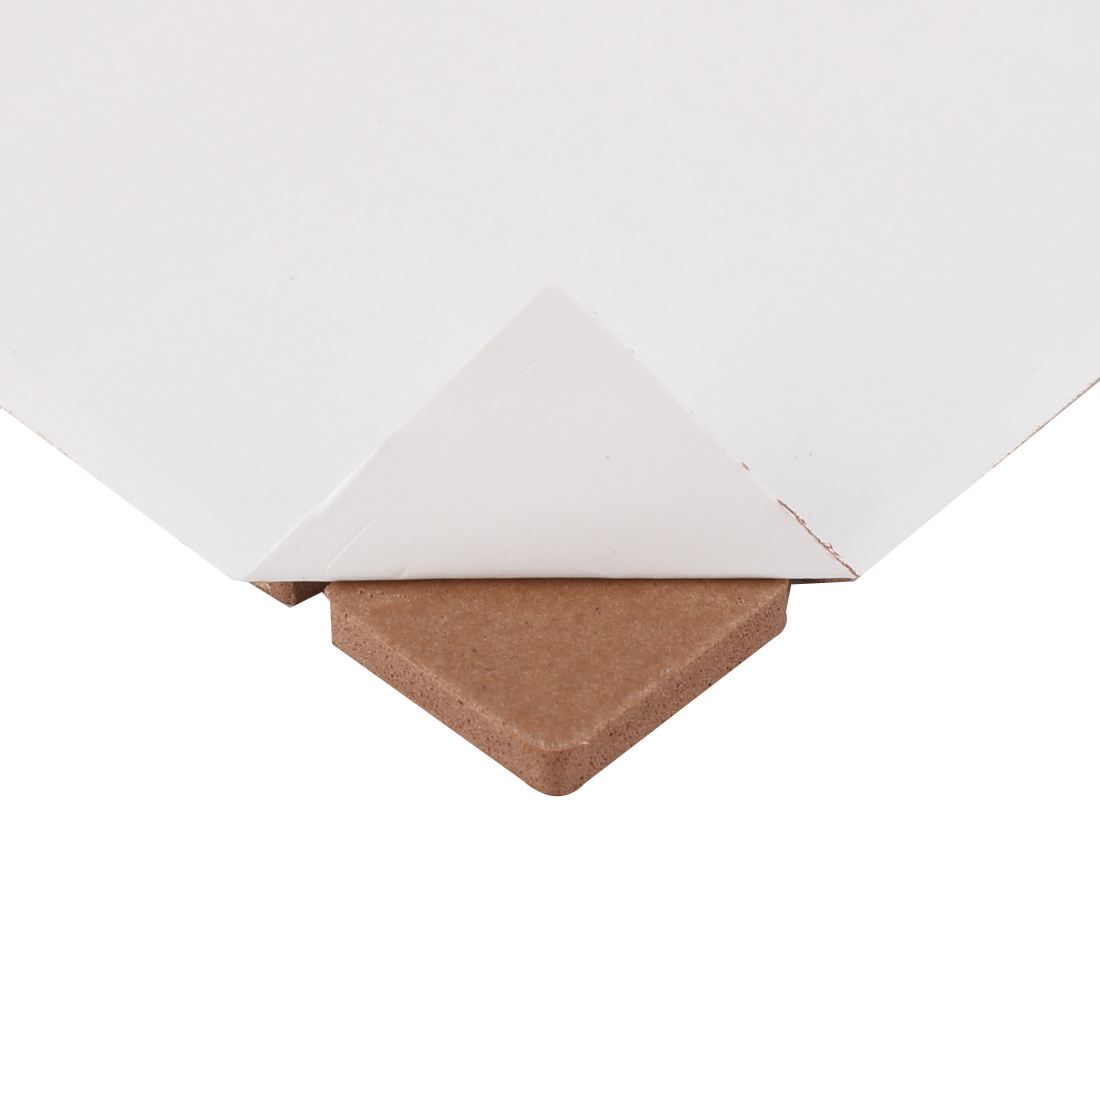 Table Chair EVA Square Self Adhesive Furniture Feet Pads Brown 18 x 18mm 32pcs - image 1 of 2